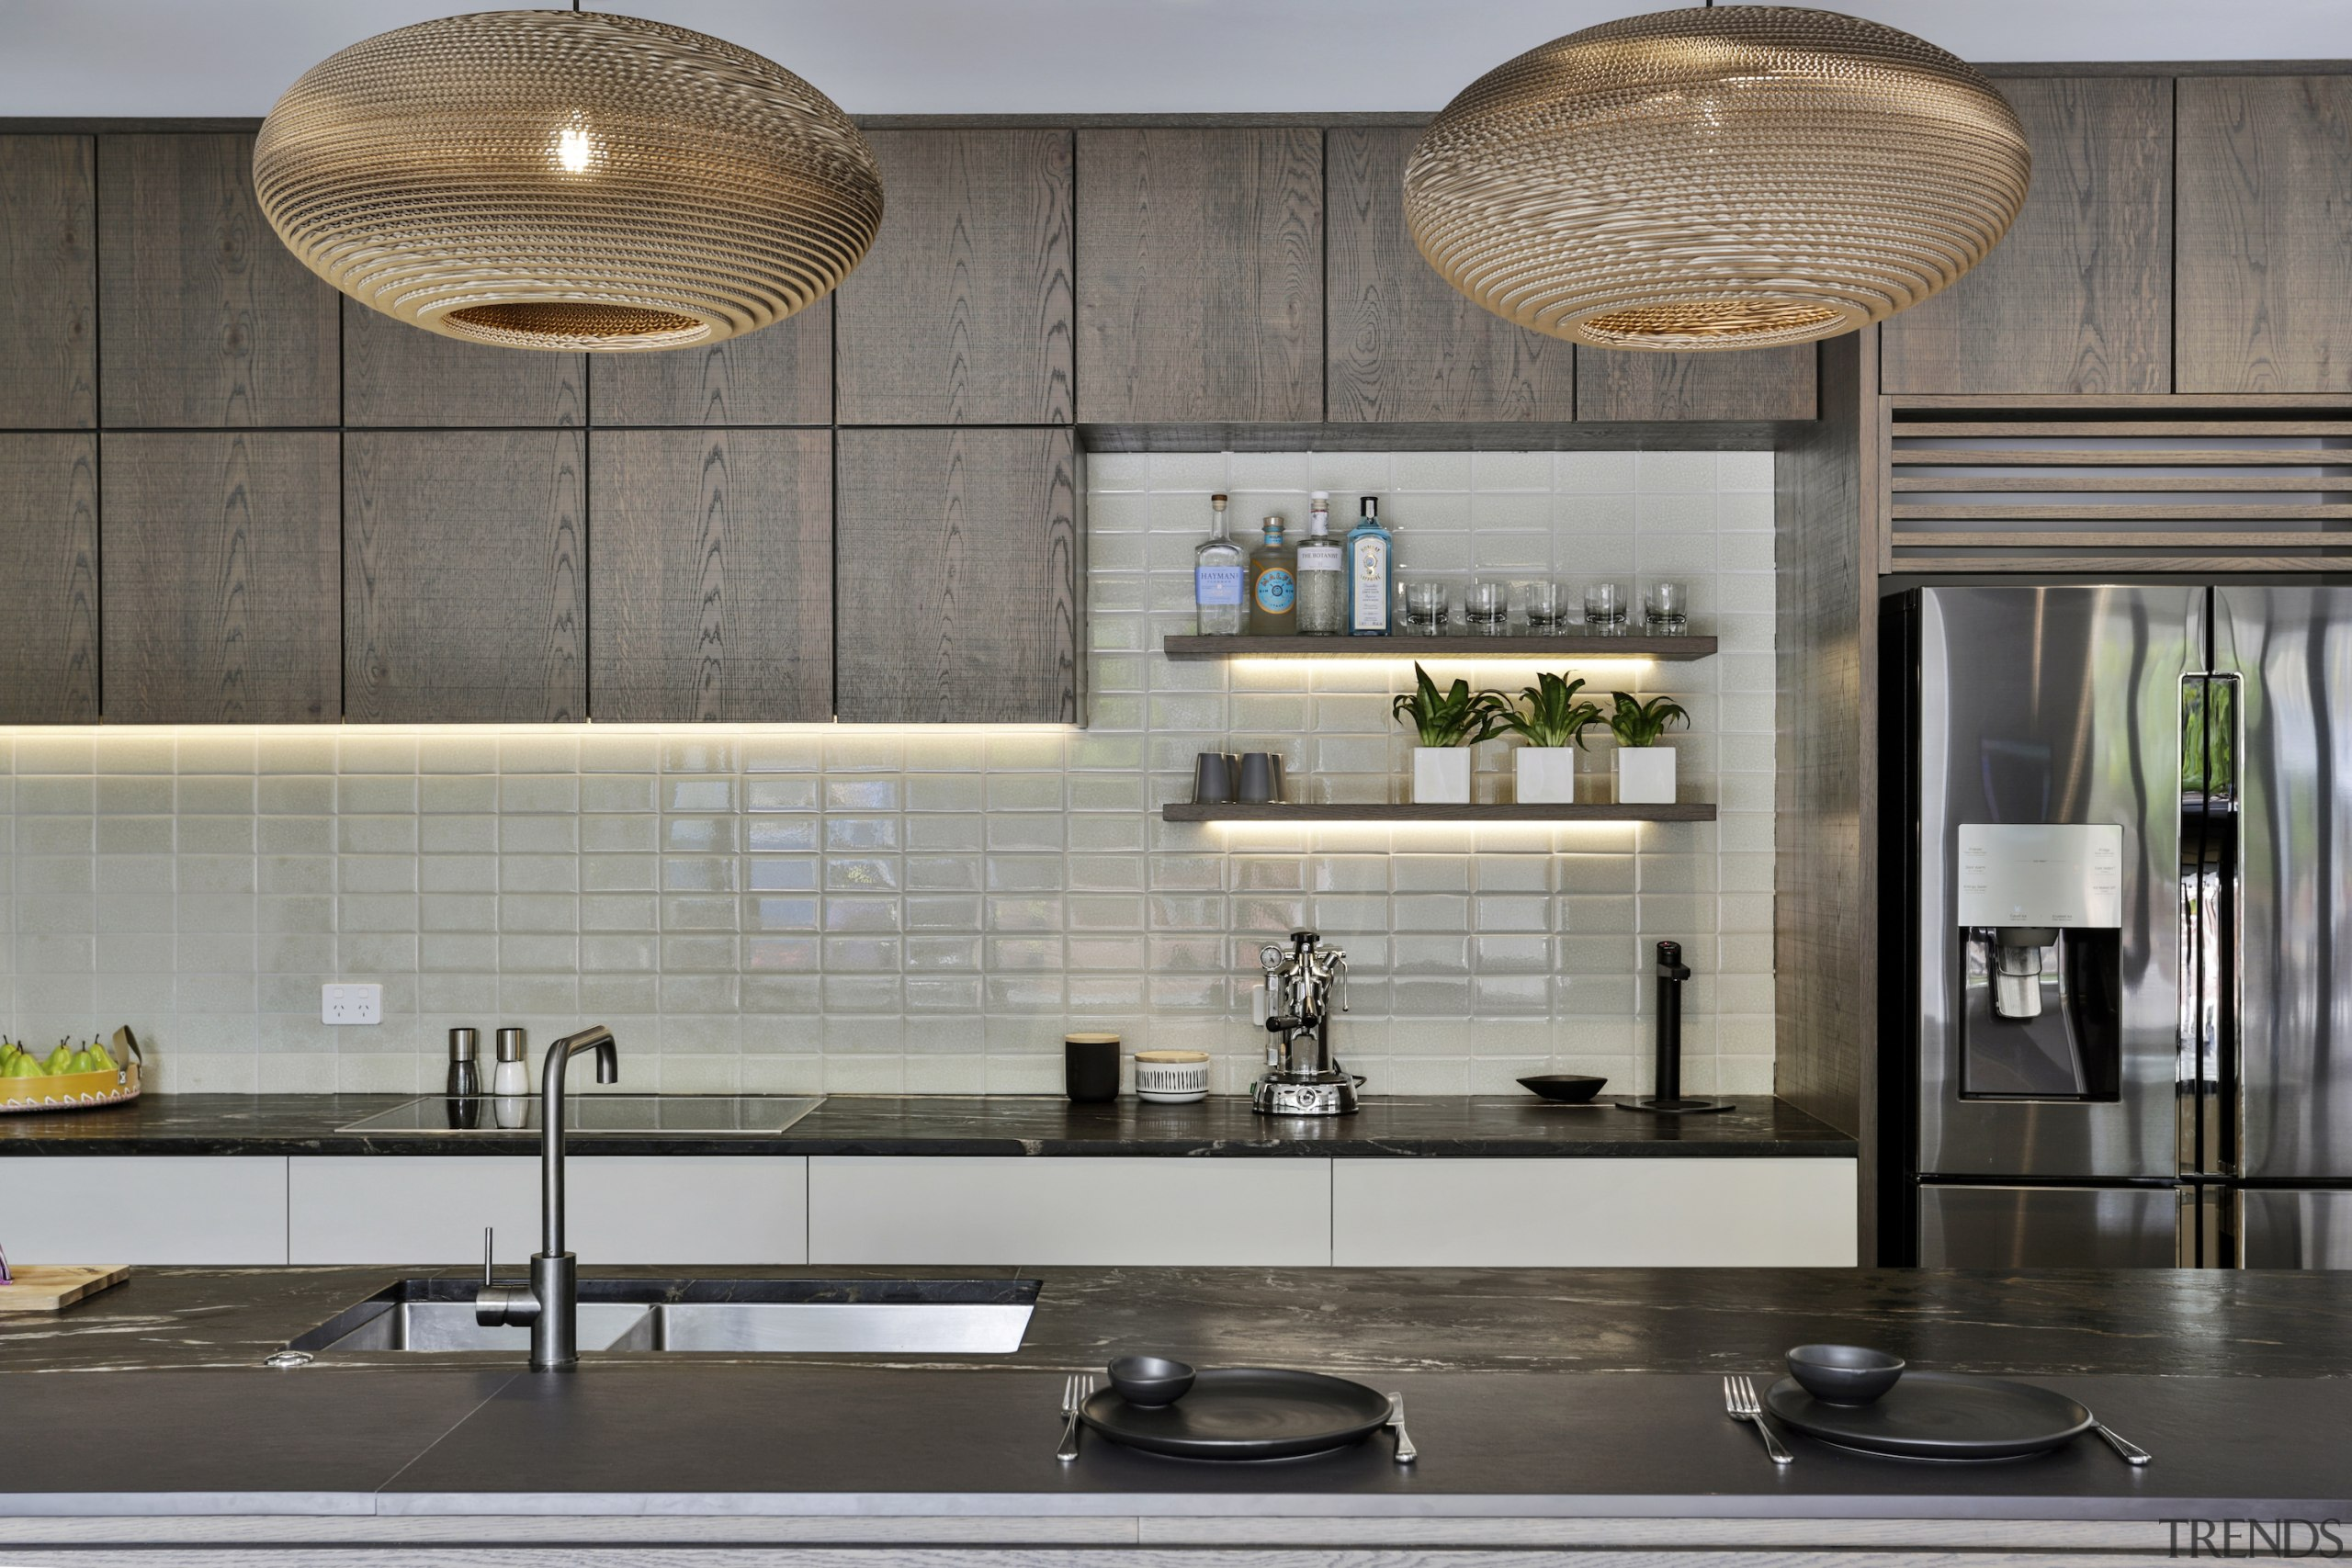 Both the crackle-glaze tiles and refrigerator reflect natural